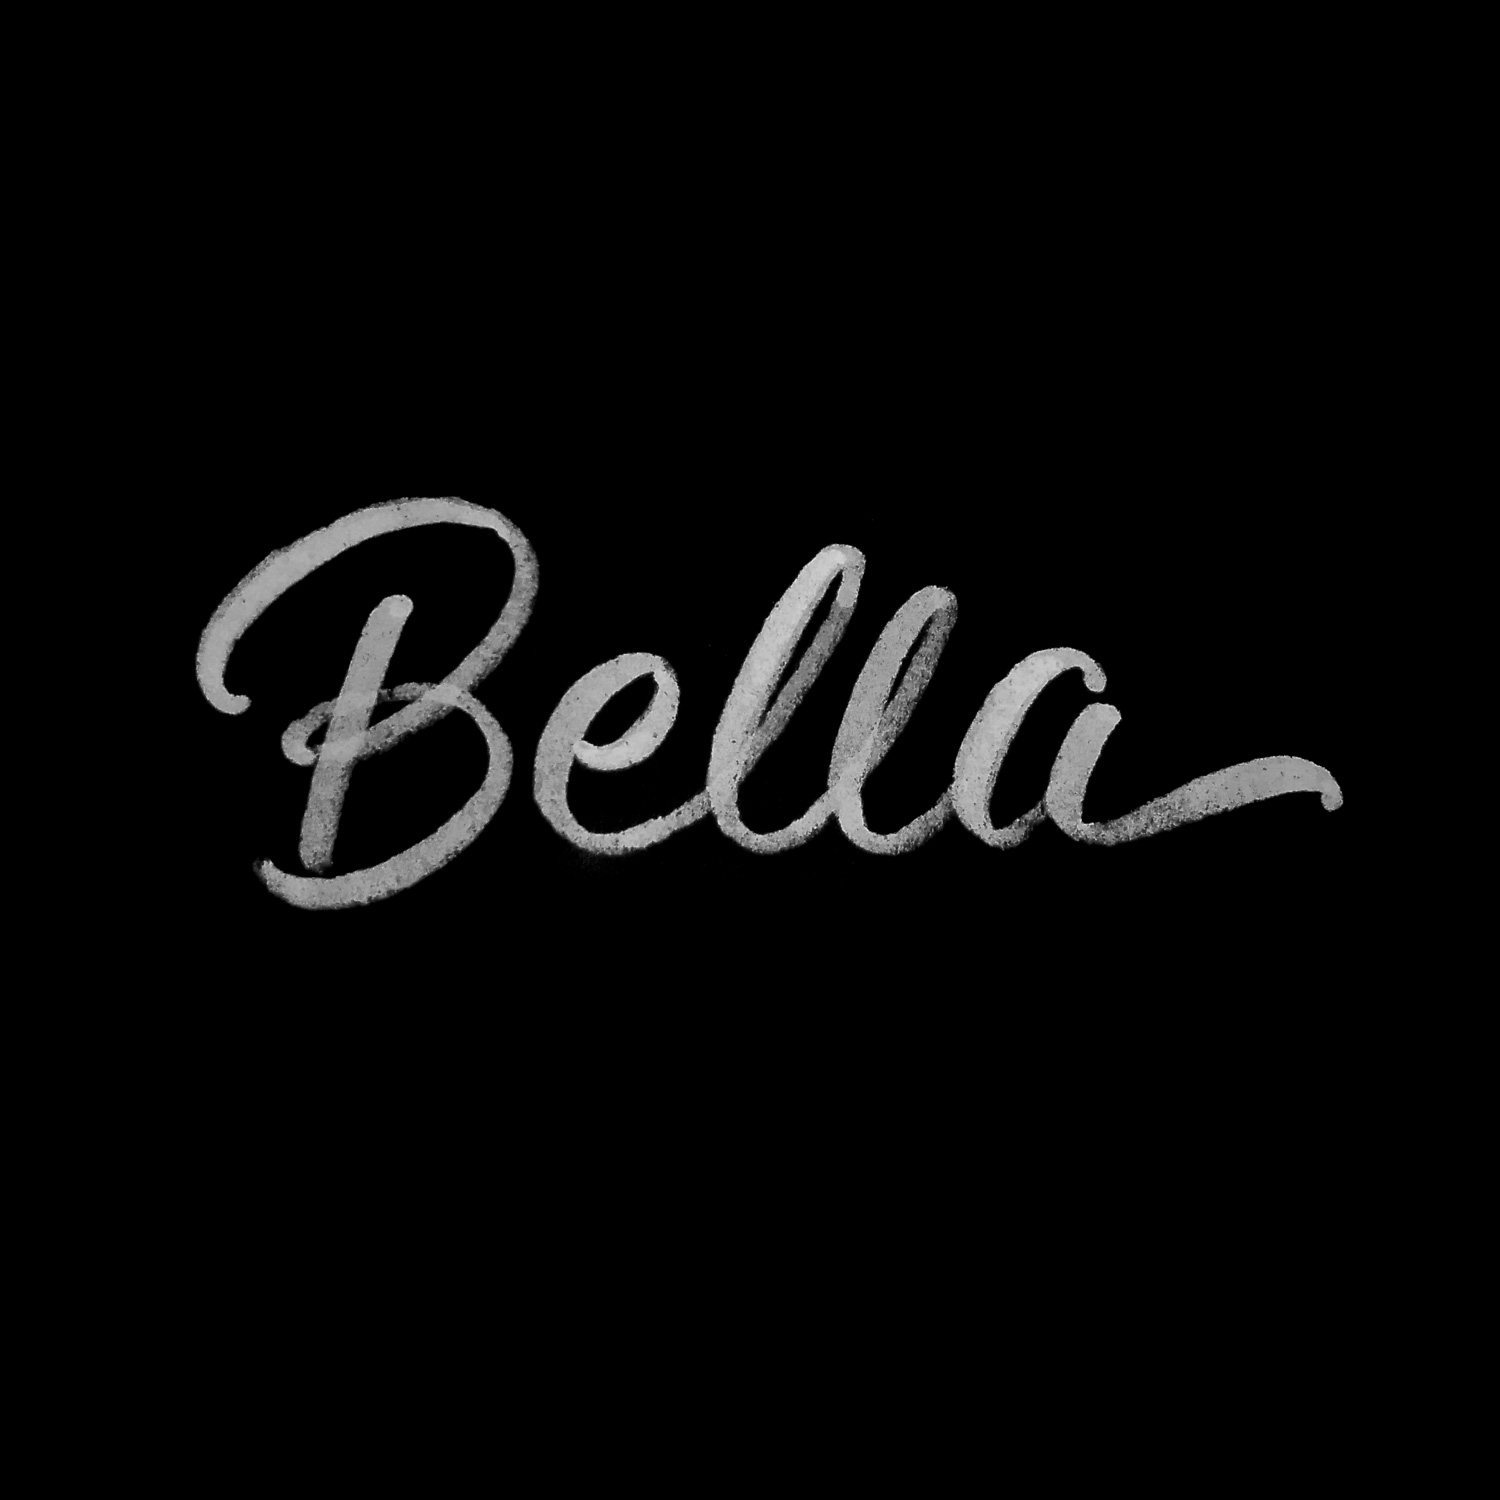 Bella-sketch